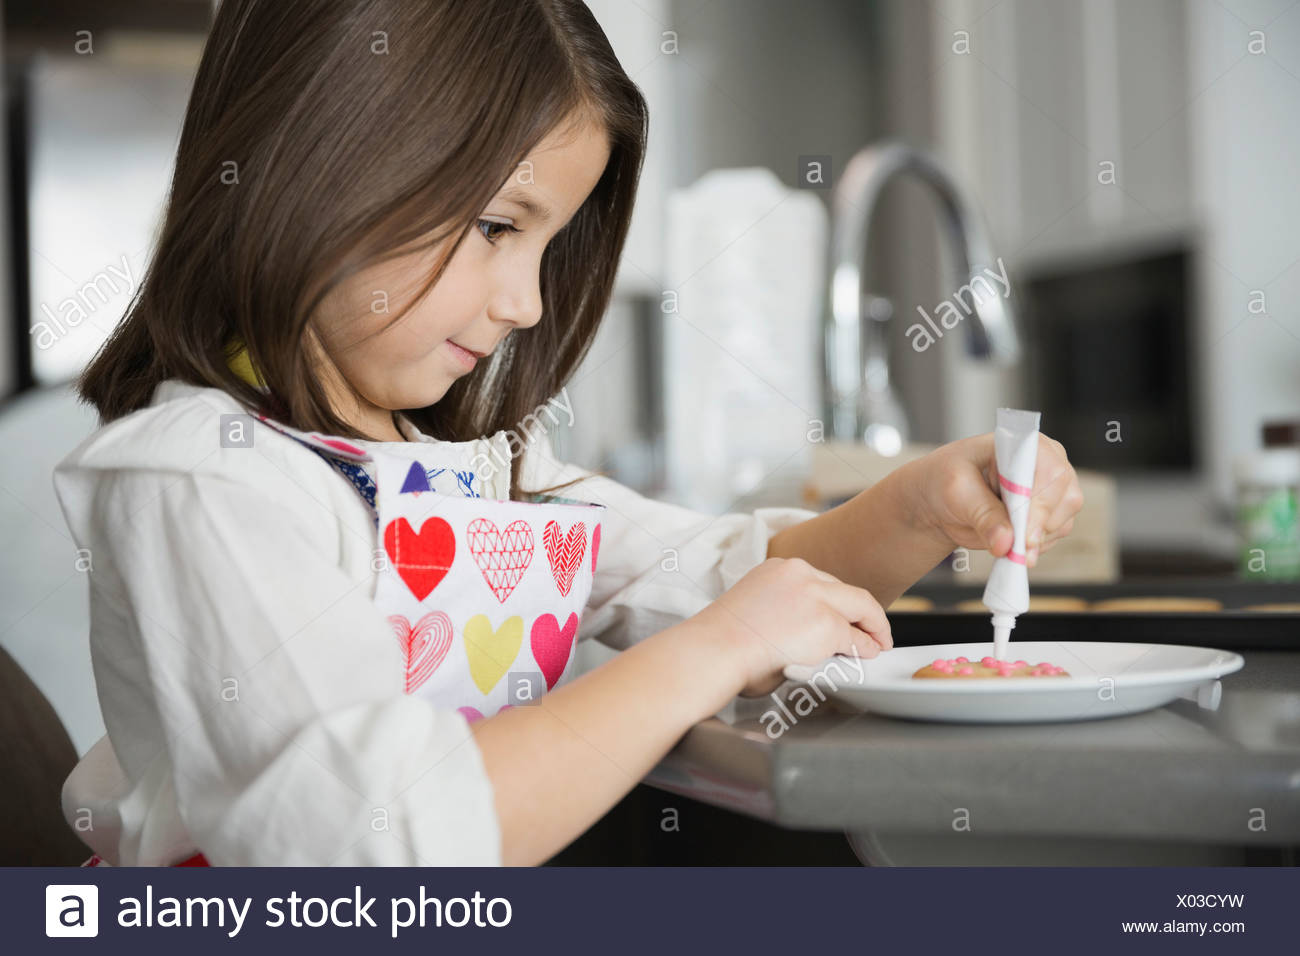 Girl decorating fresh baked cookie - Stock Image